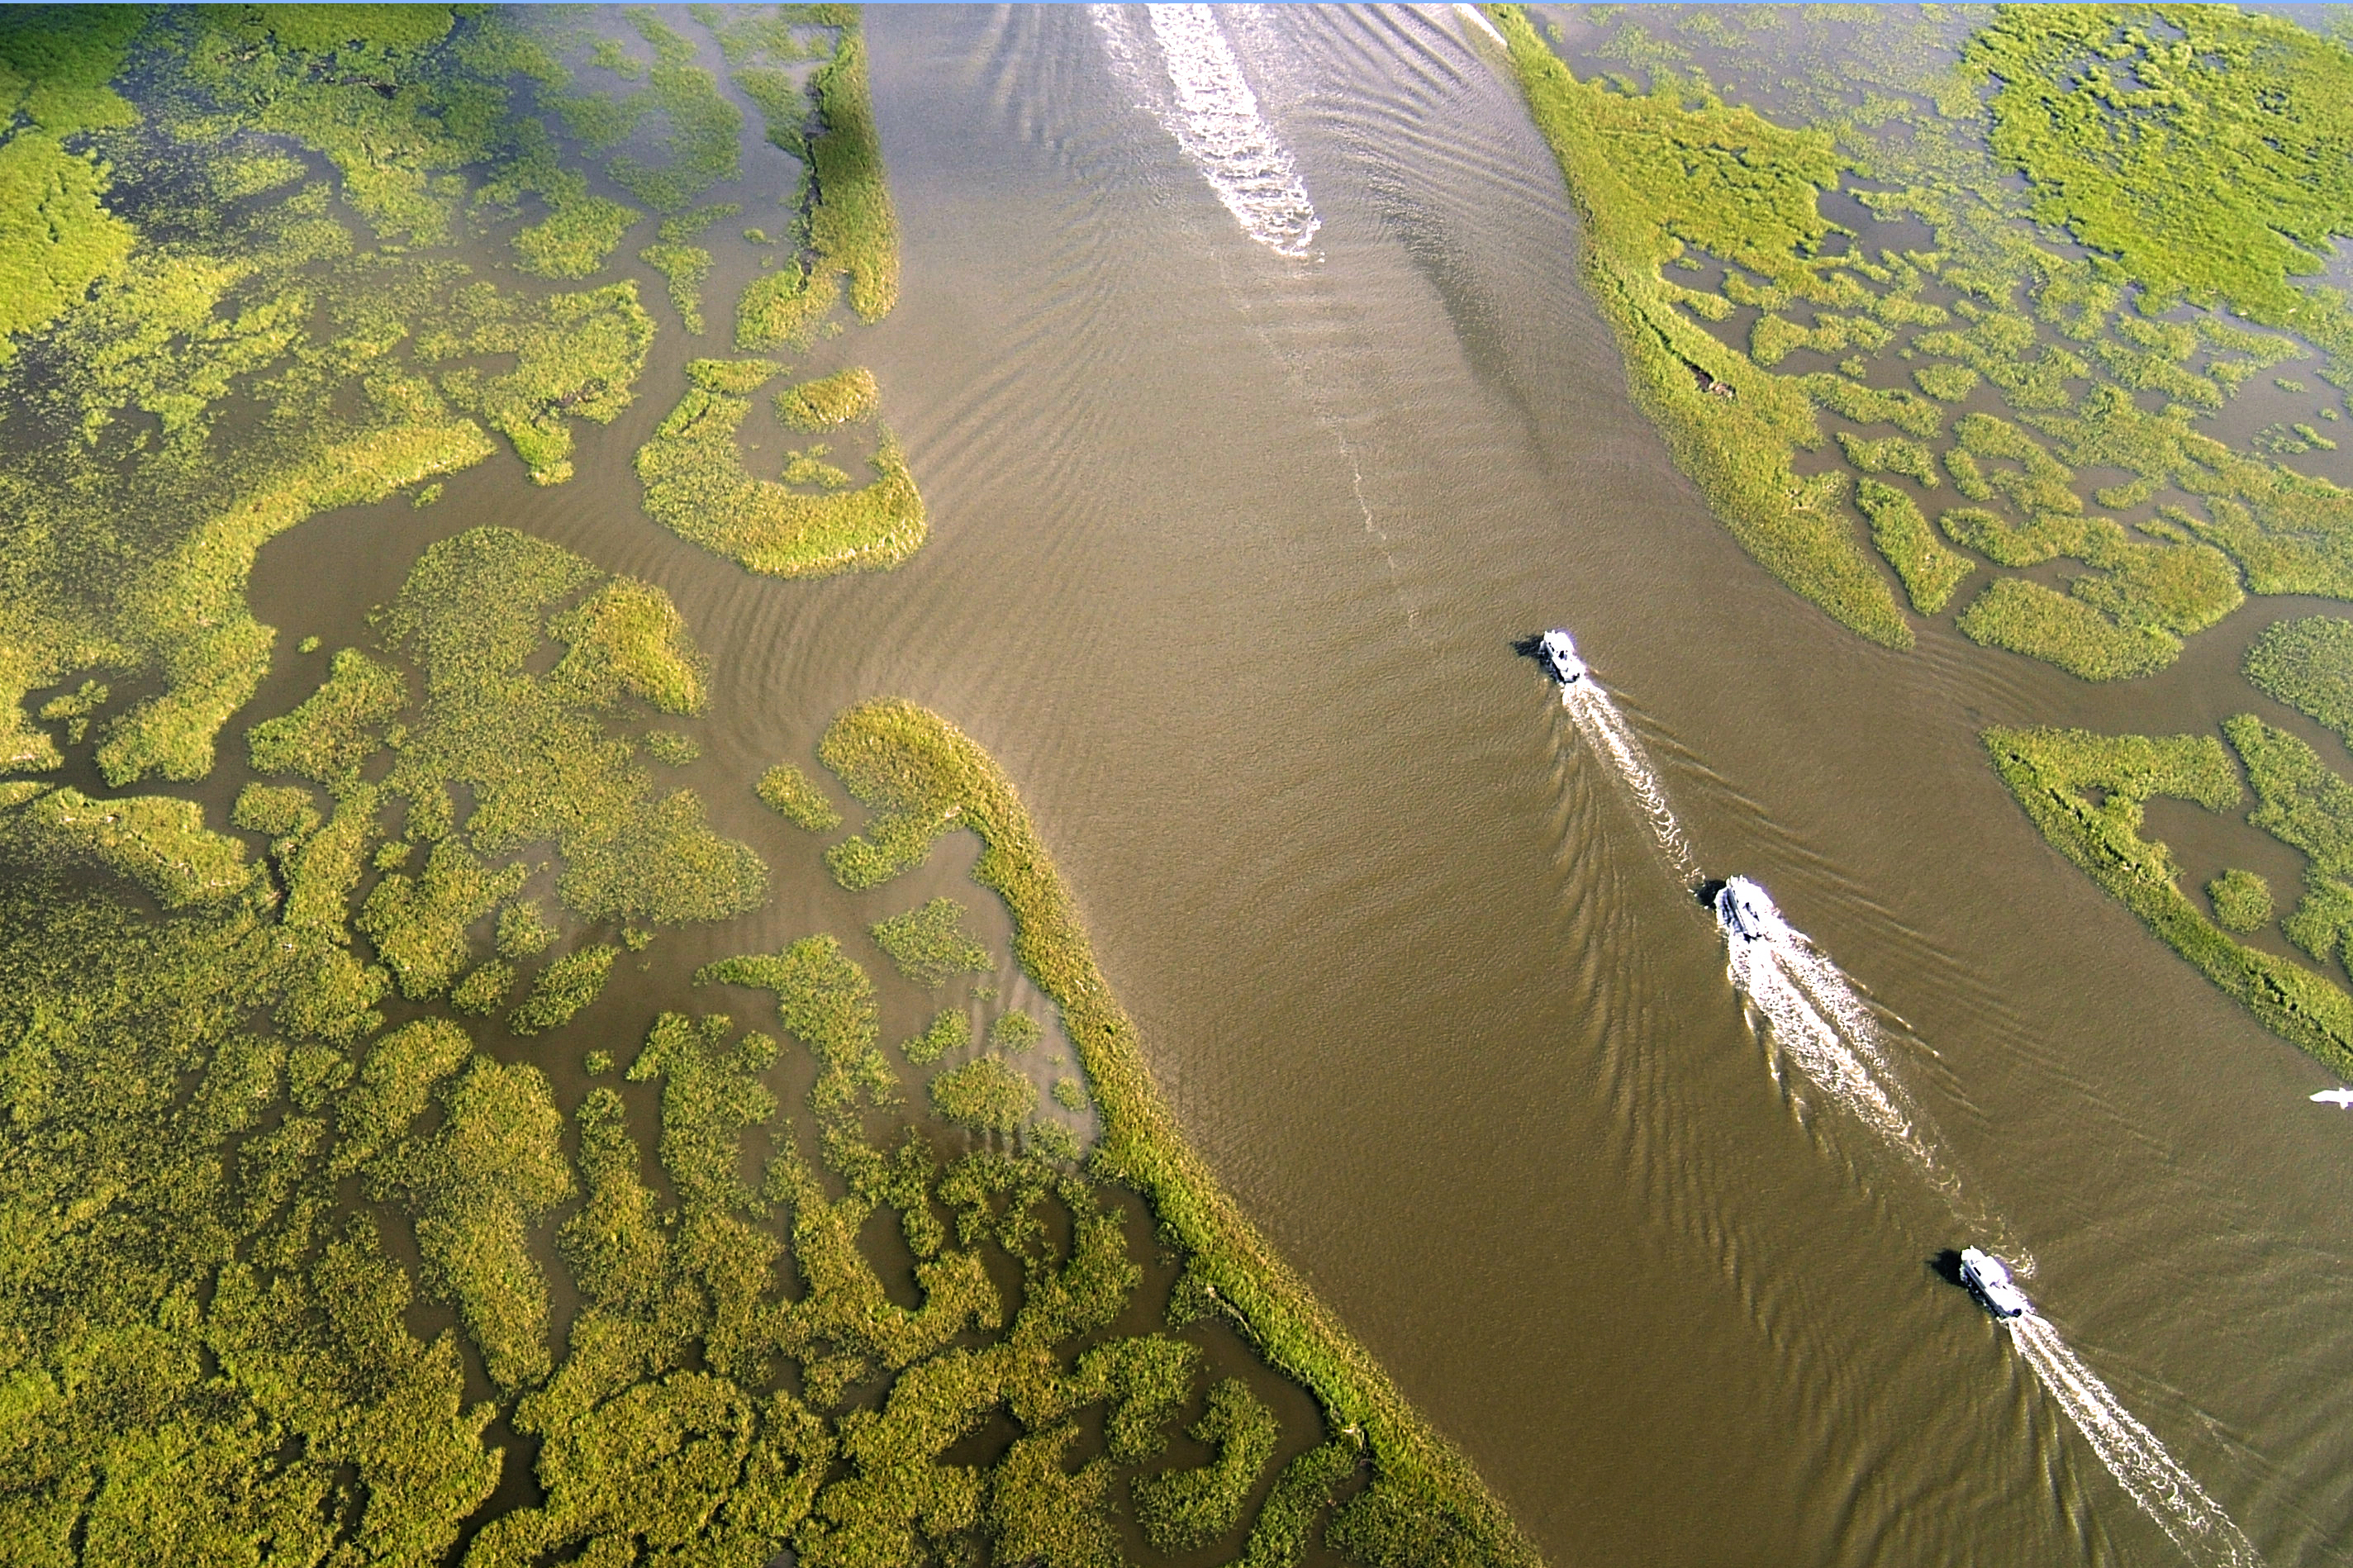 Aerial view of boats traveling along channels surrounded by marsh in Louisiana.